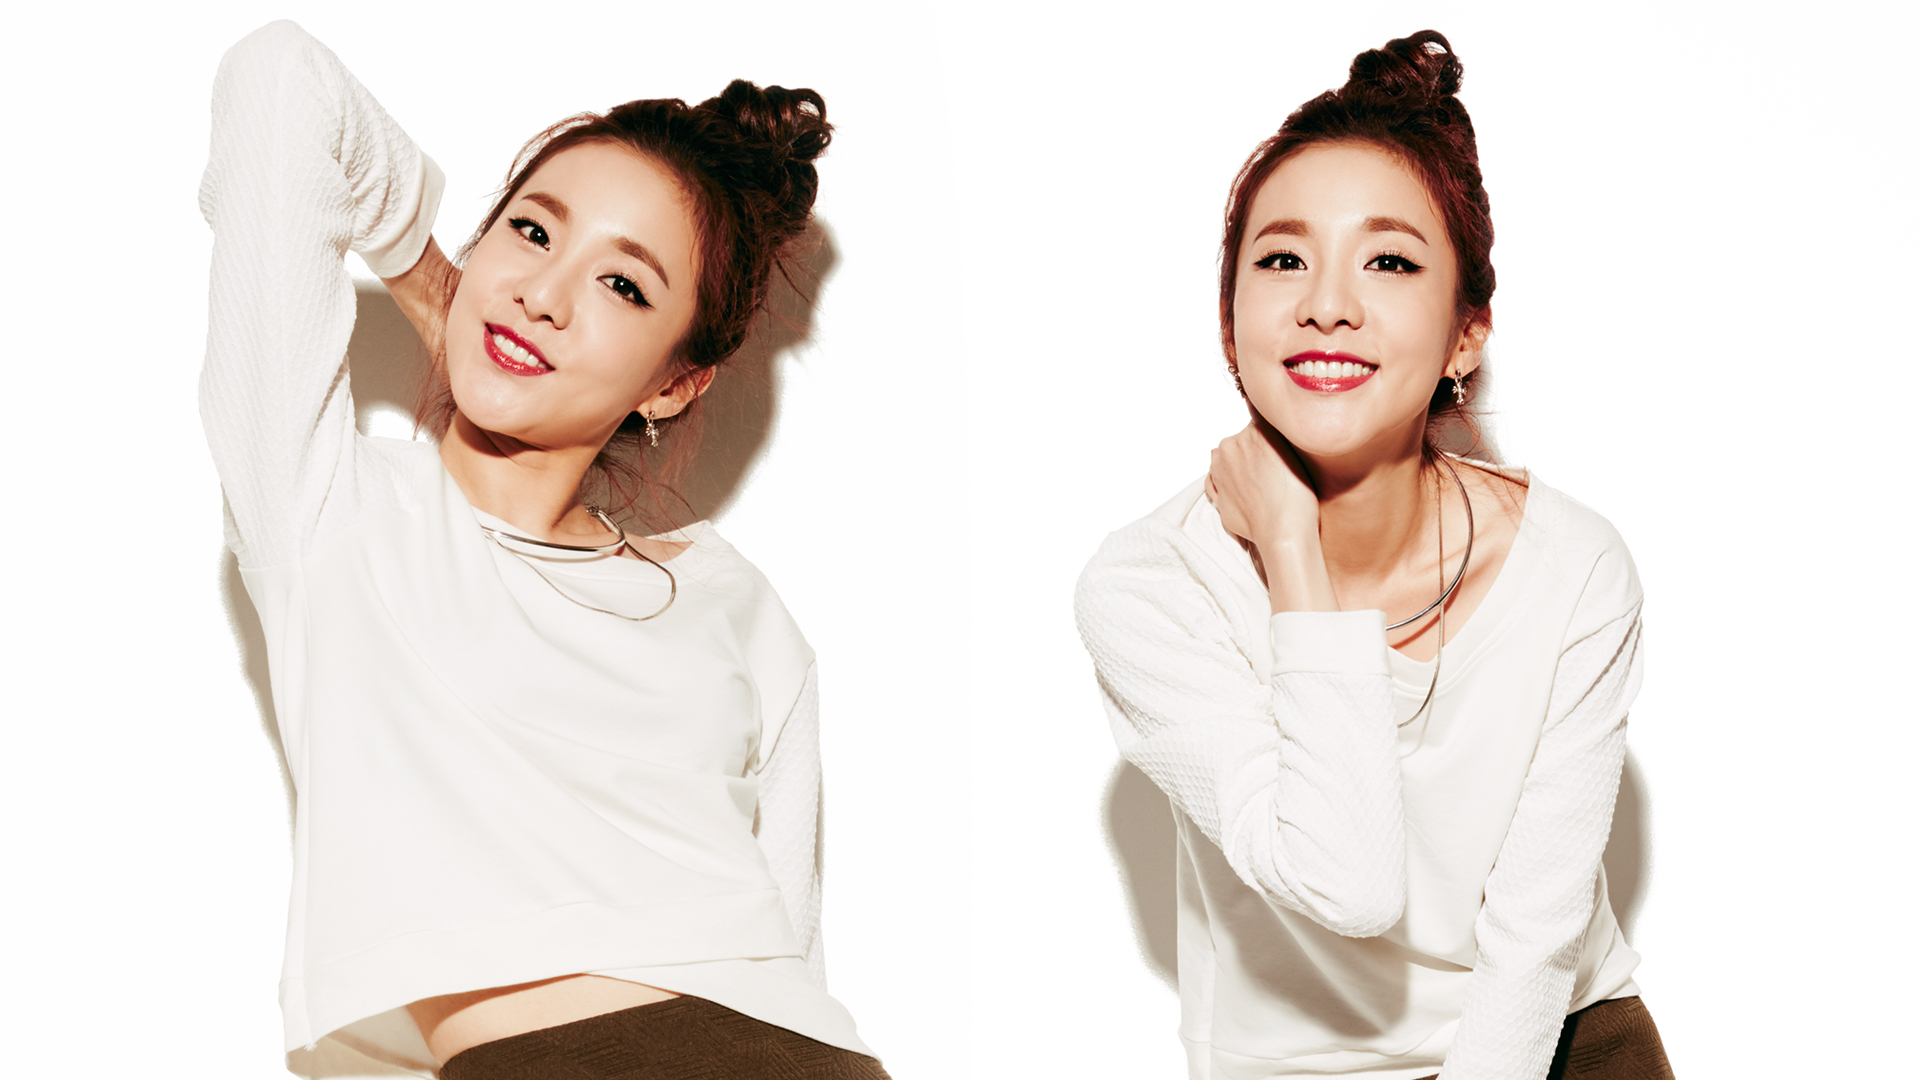 Dara posing for Penshoppe in their new promotional video